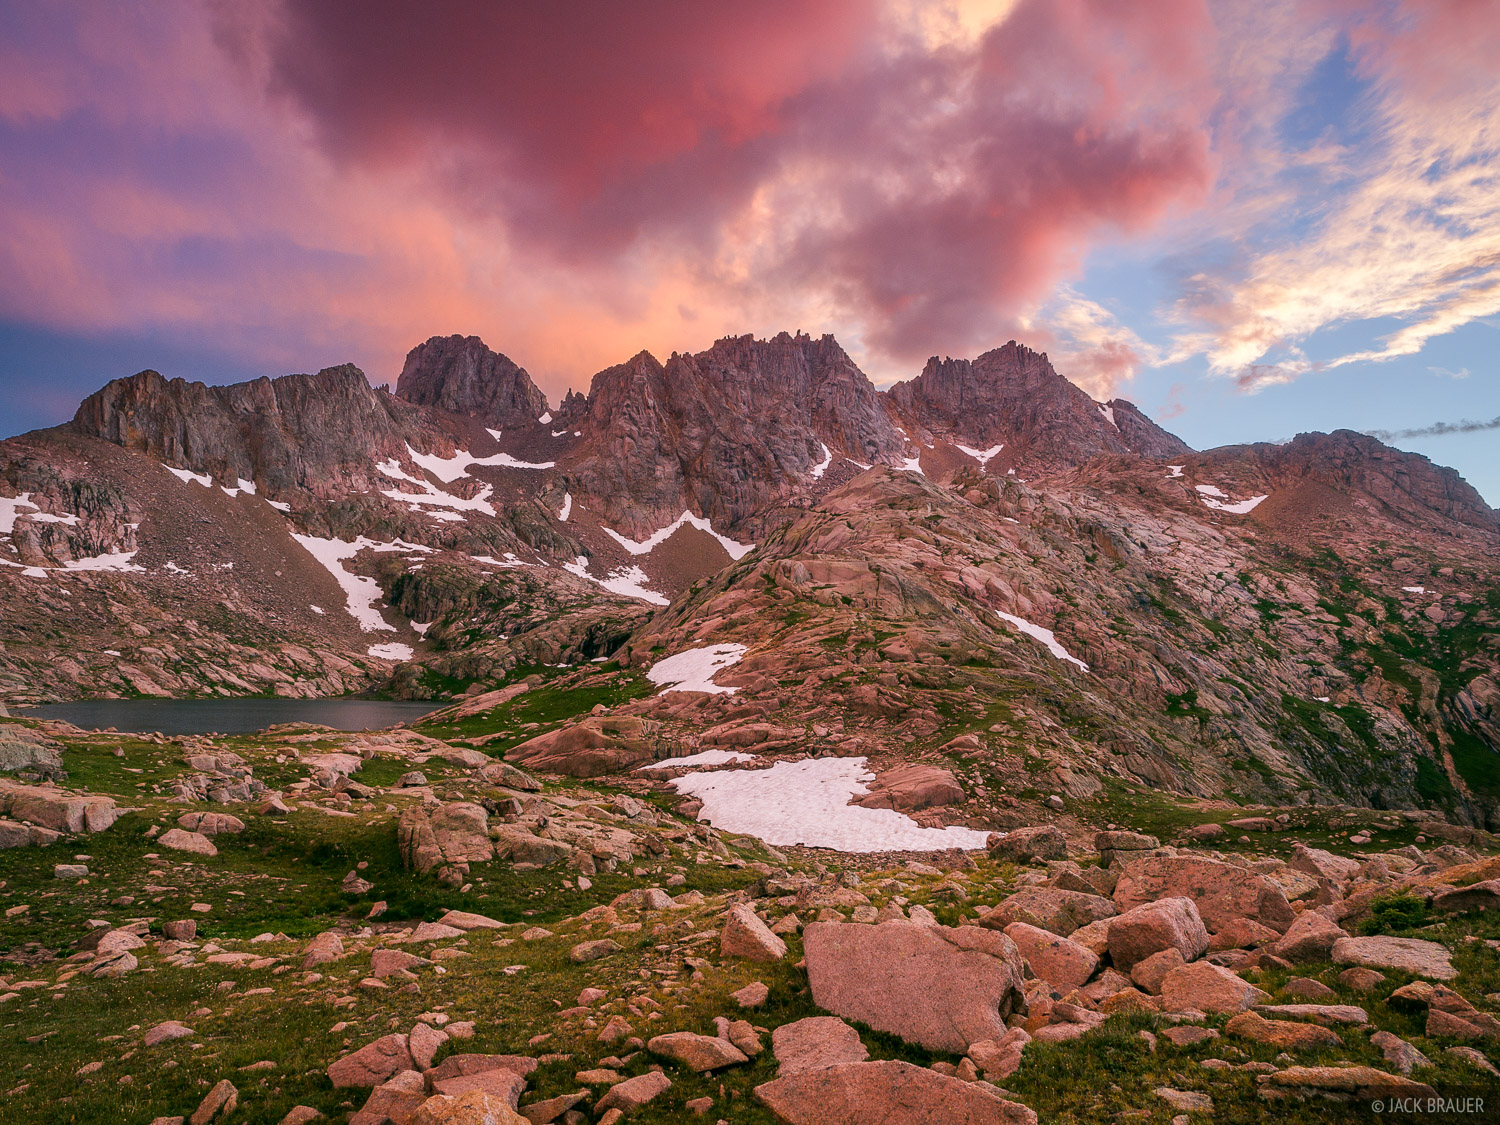 Colorado, Needle Mountains, San Juan Mountains, Weminuche Wilderness,, 14er, photo